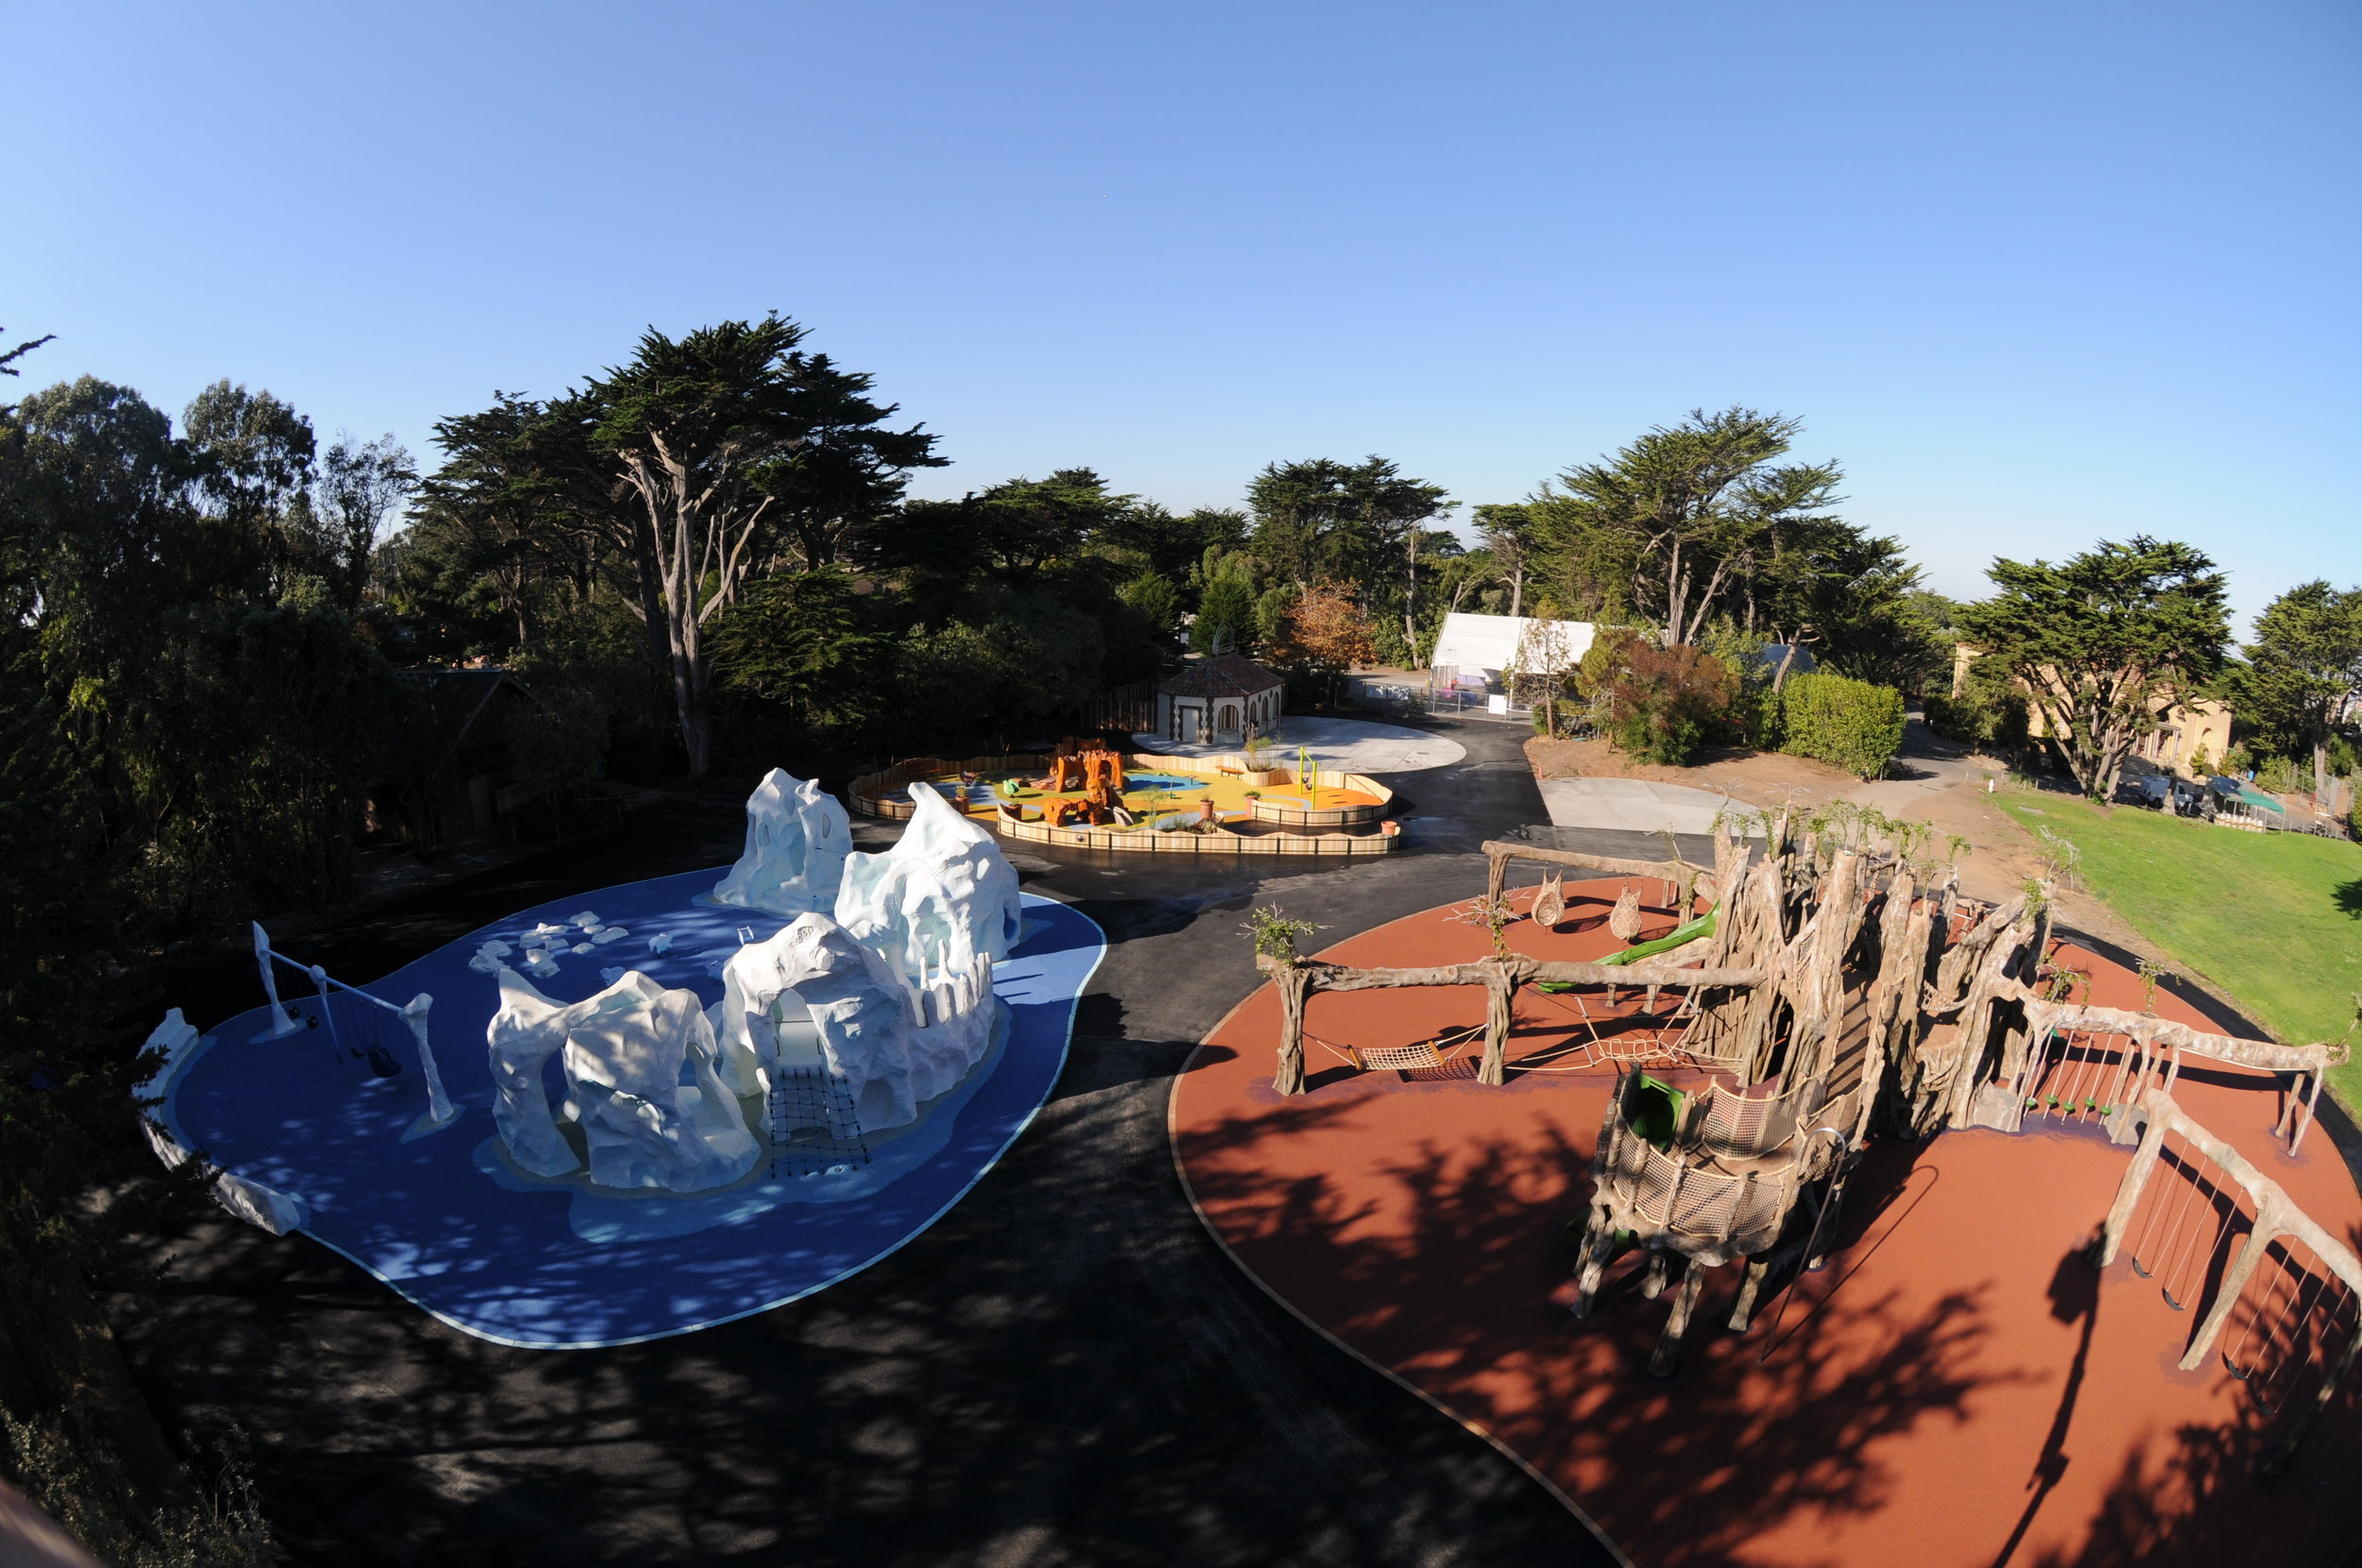 Nature inspired, unique playground with banyan tree climber, swings, slides, nest swingers, riverside play area; a riverside playground scene with natural redwood climbers, PIP rubber surfacing, and sand pit; natural sculpted concrete ice burg climber with ADA accessible swings